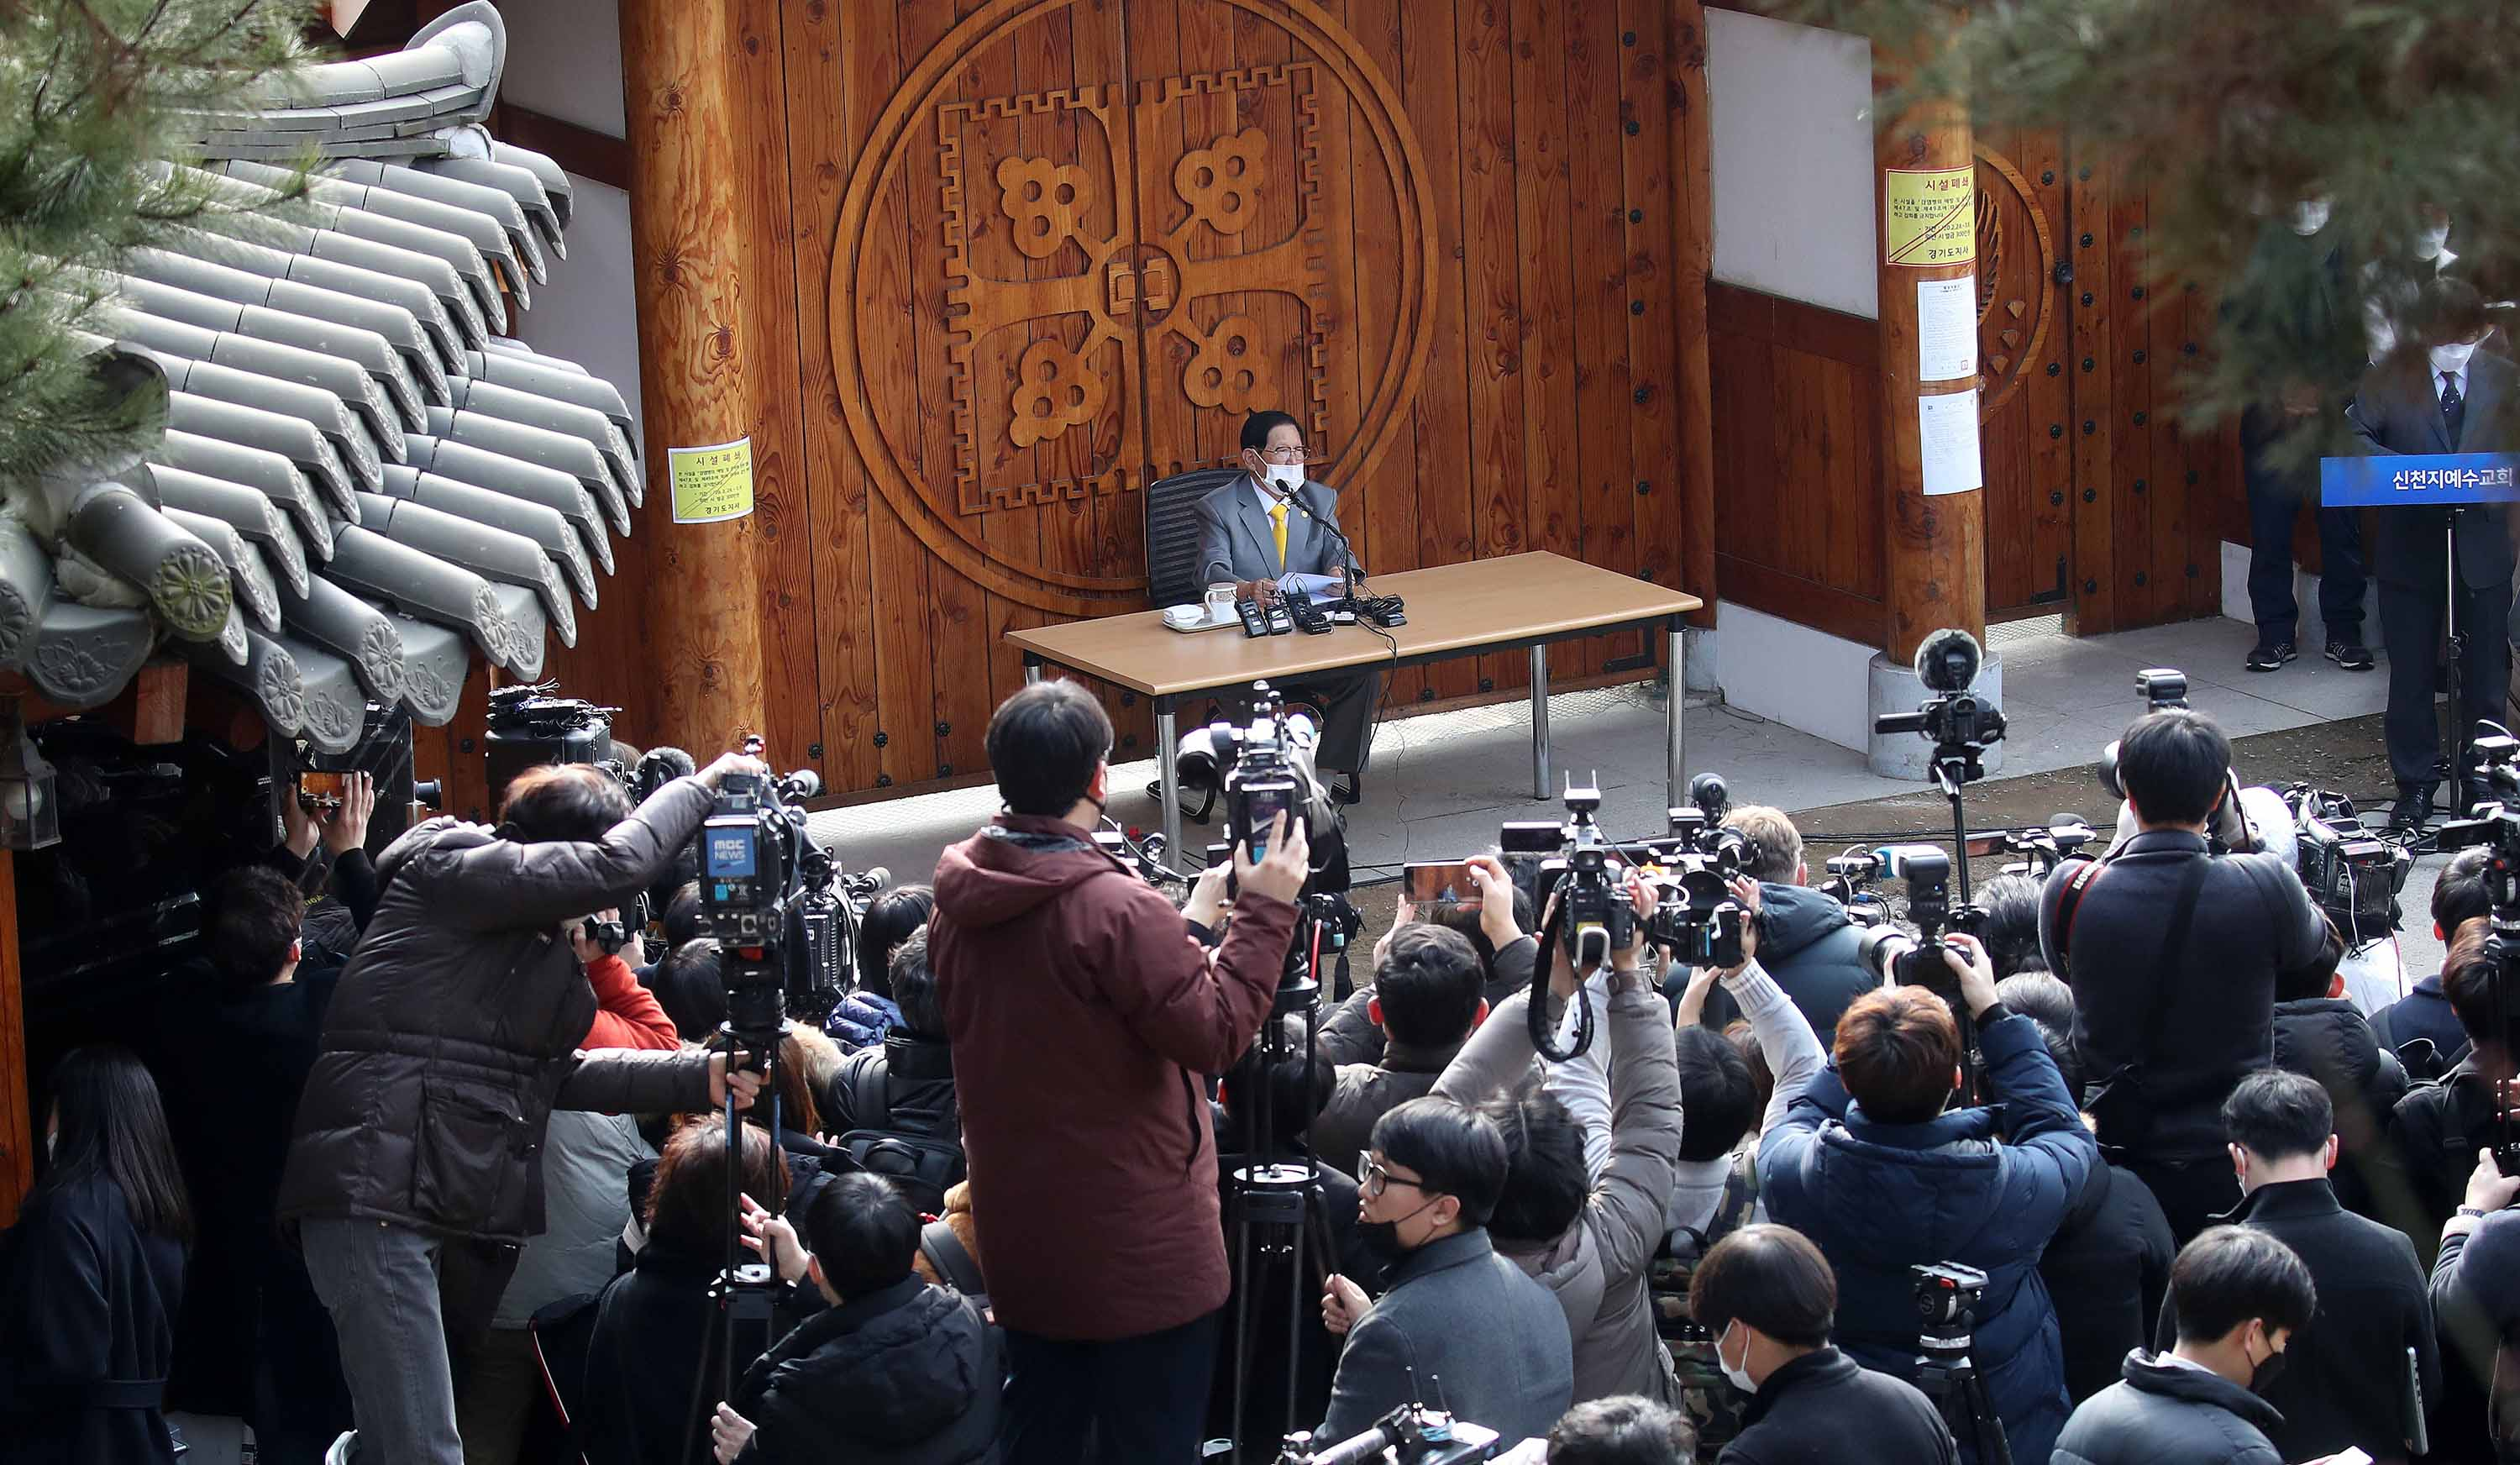 Lee Man-hee, leader of the Shincheonji group, speaks during a press conference in Gapyeong, South Korea, on Monday.